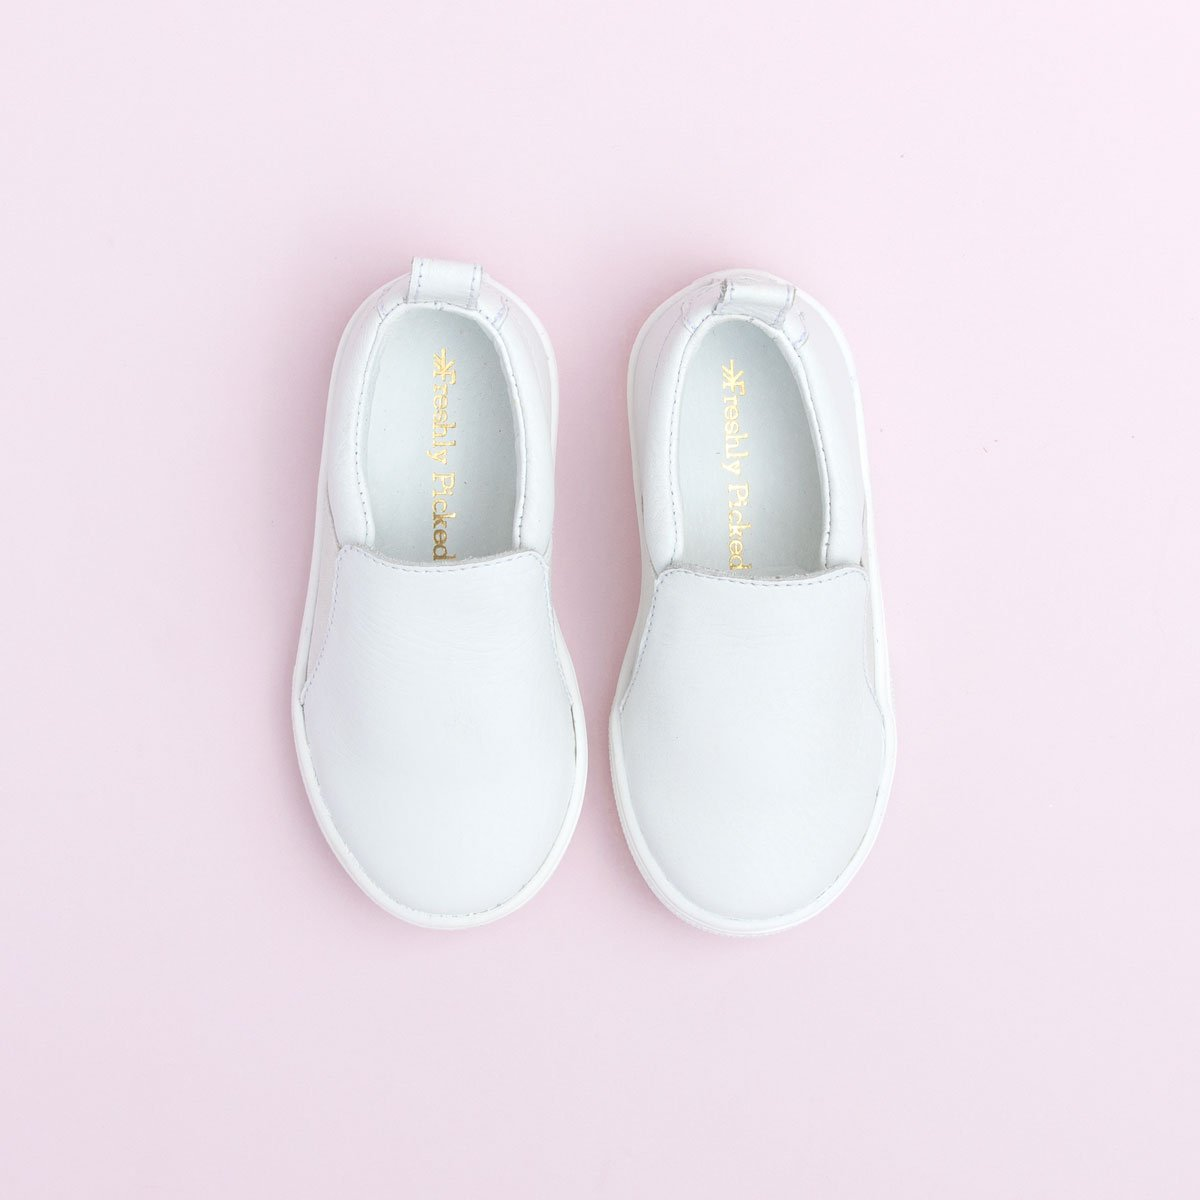 White Slip-On Sneaker Kids - Slip-On Sneaker Kids Sneakers